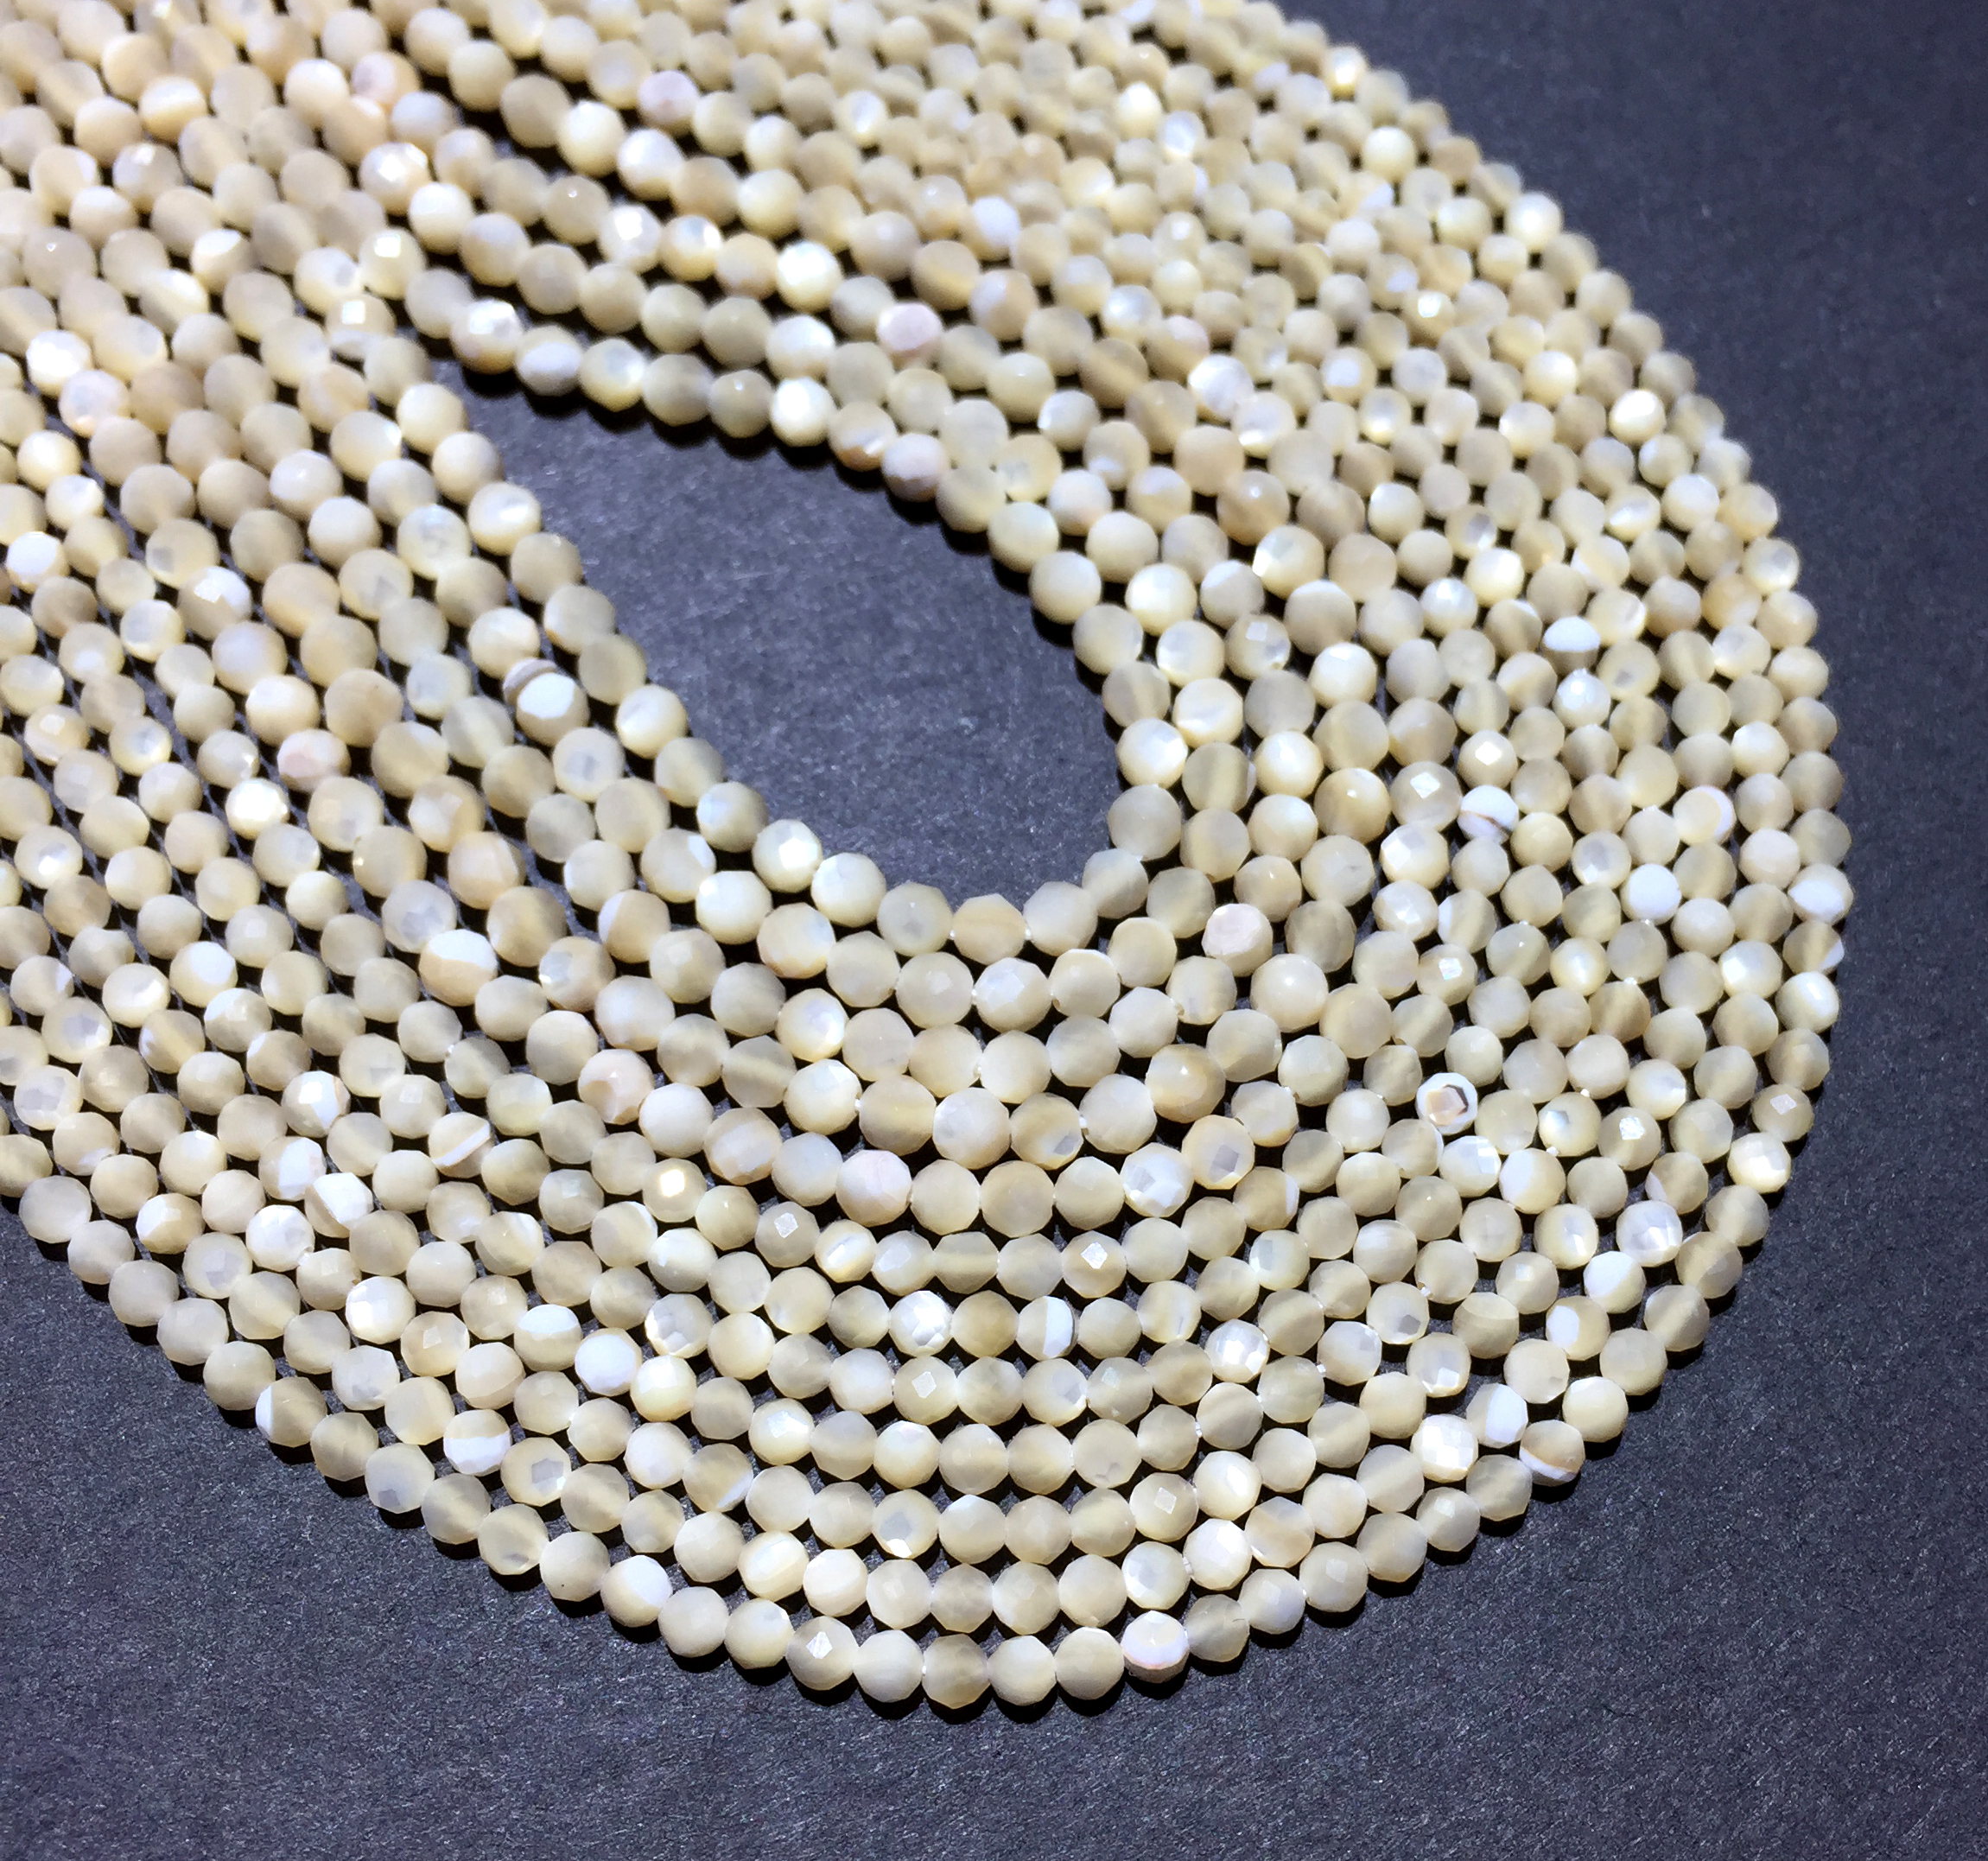 Natural 2mm Mother Of Pearl Small Size Faceted Round Loose Bead Healing Energy Gemstone Jewelry Making Bracelet Necklace Design